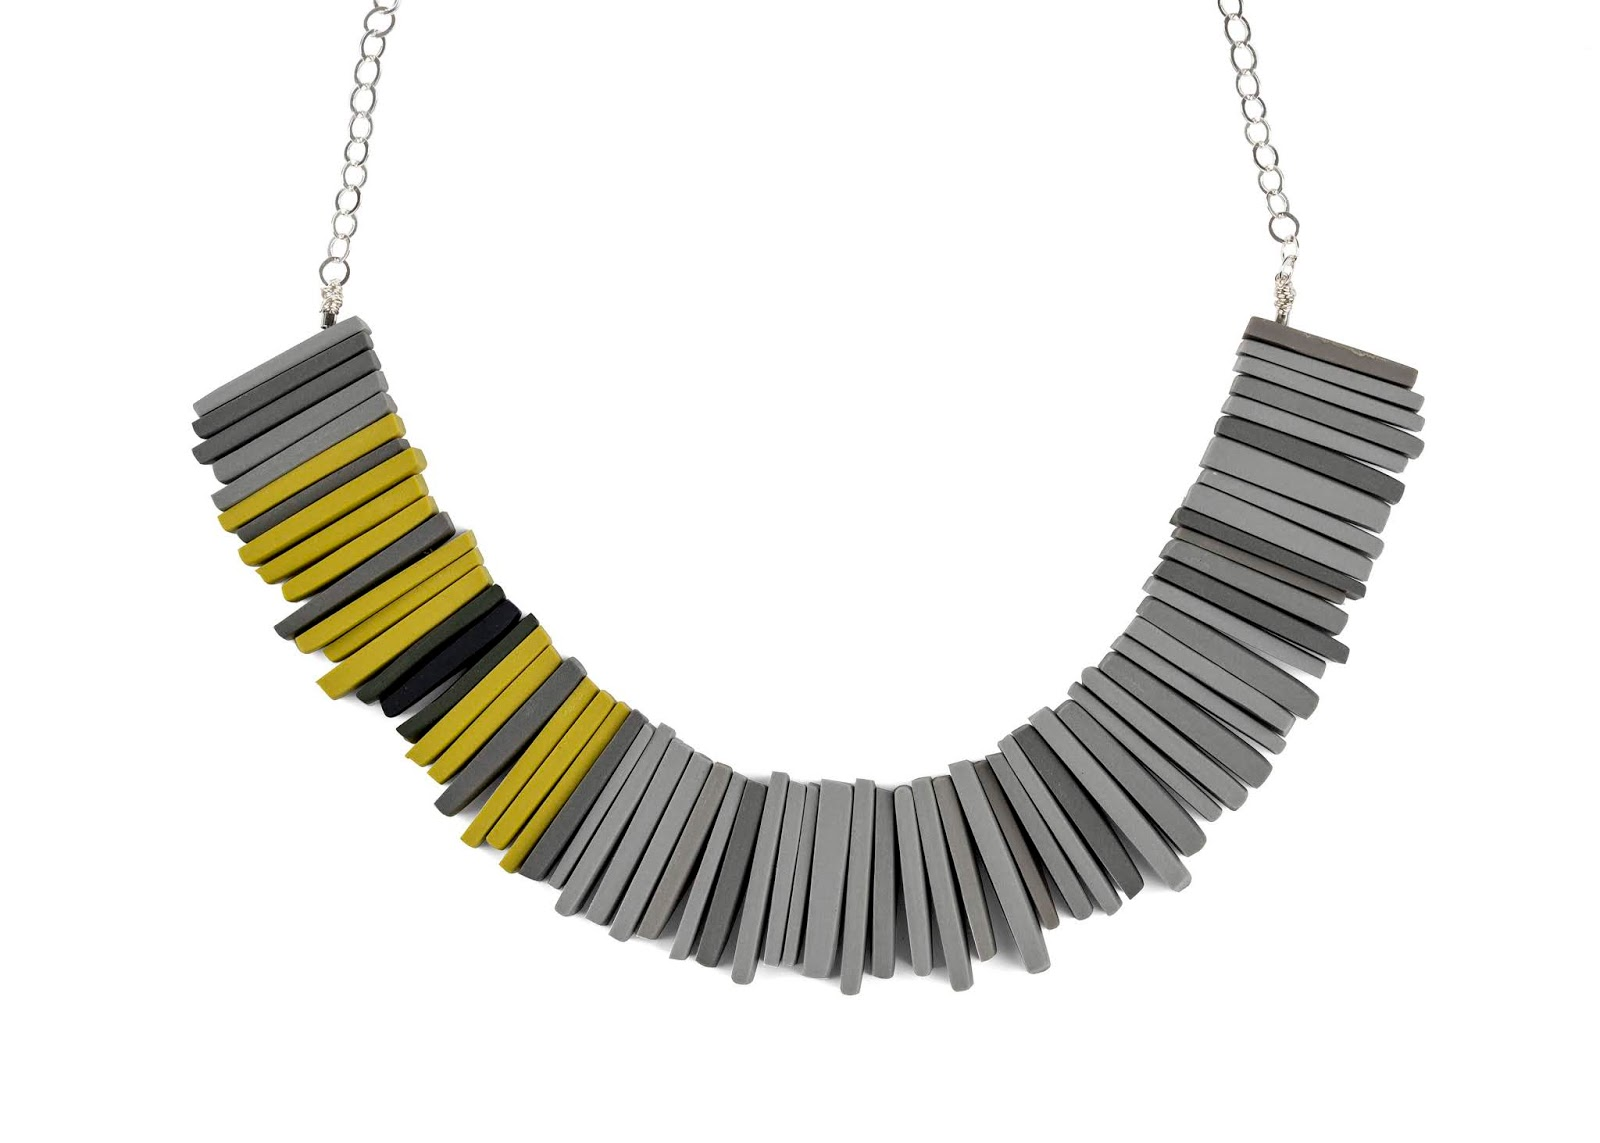 Modern Deco Necklace in sulphur and grey by Colour Designs, £65